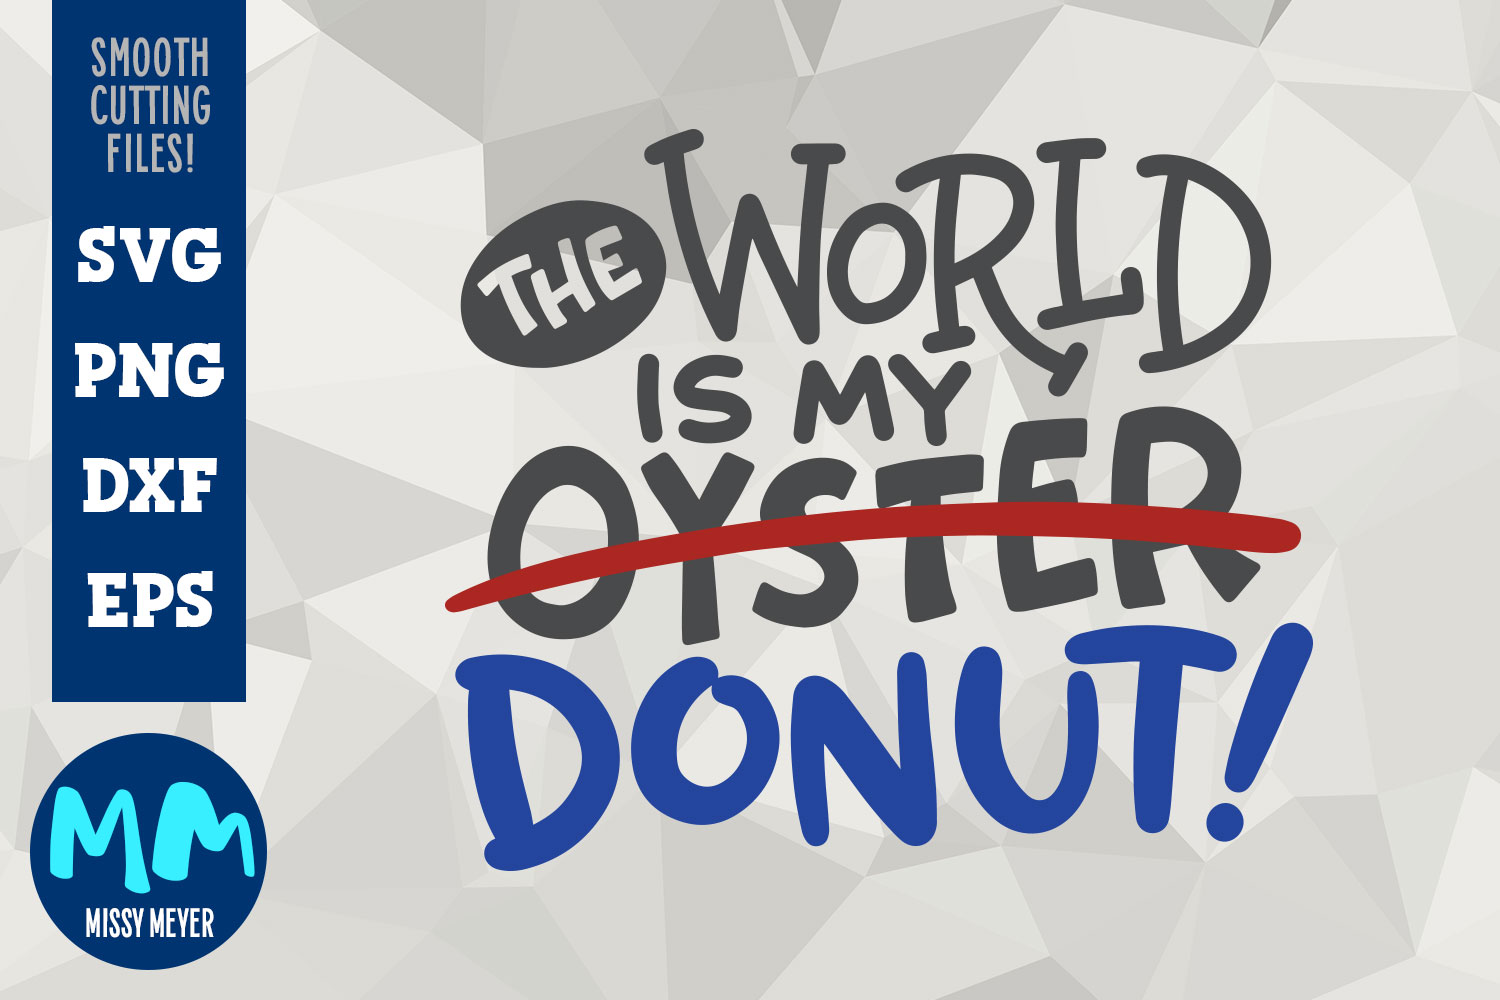 The World Is My Donut - Hand-lettered Cut File Design example image 1